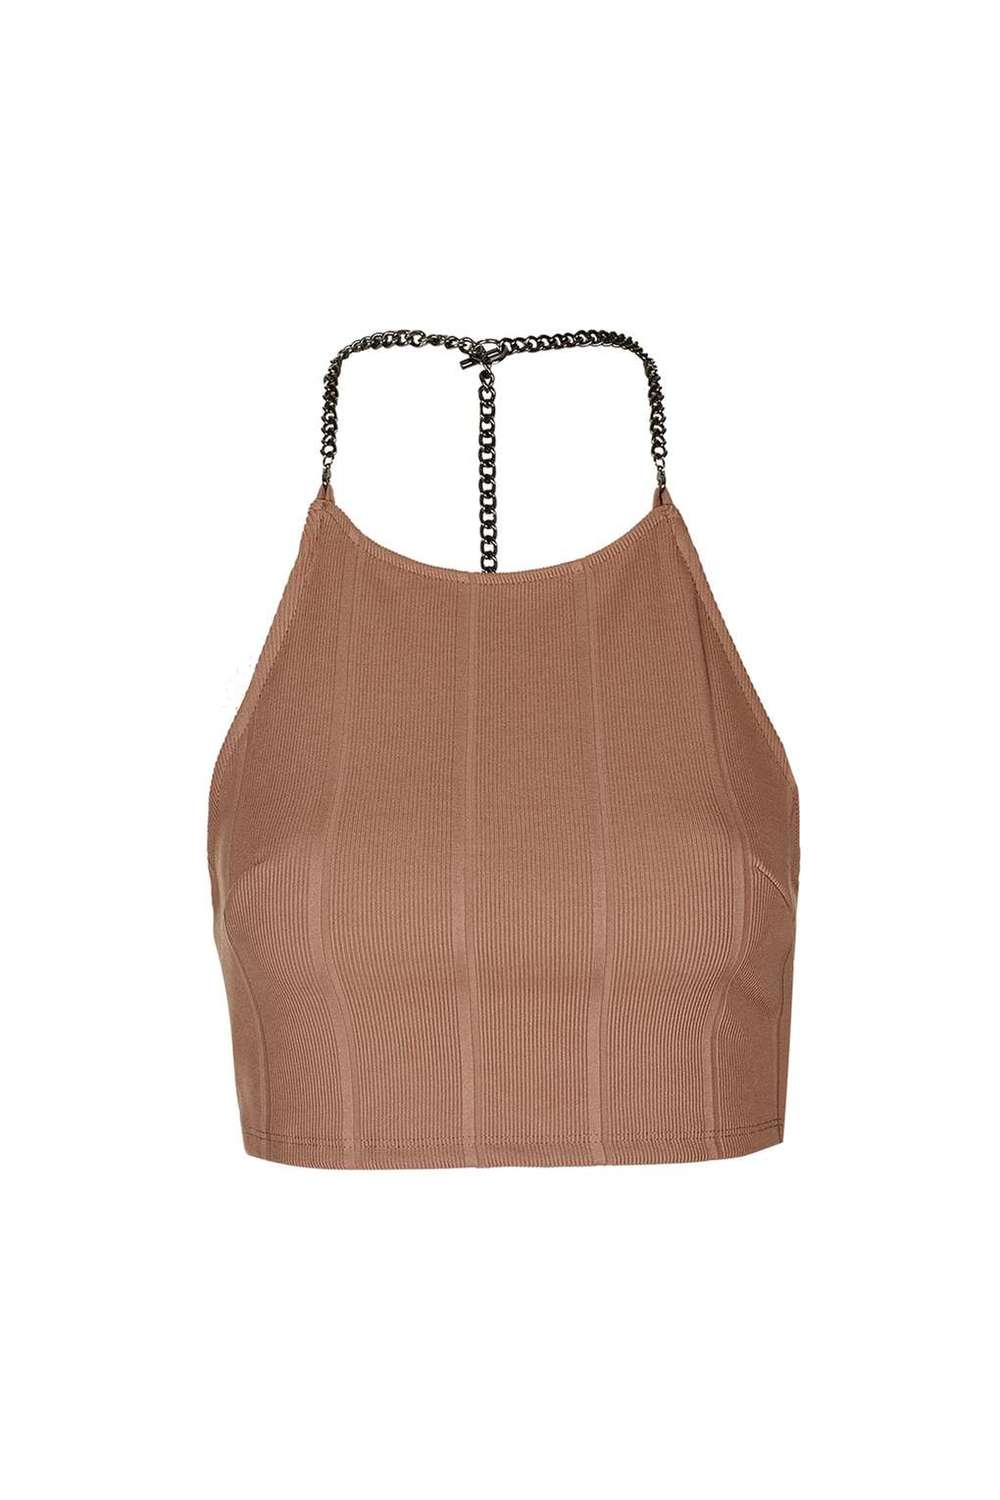 Chain Bandage Crop Top £24.00, Top Shop